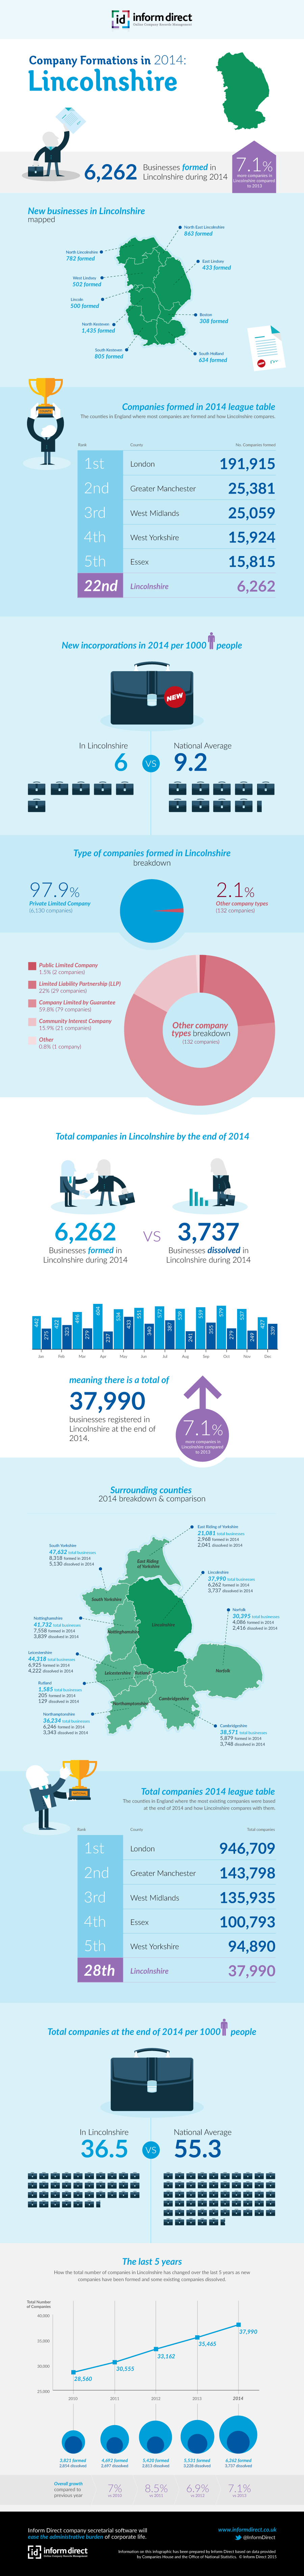 Inform Direct - Company Formations in Lincolnshire 2014 Infographic